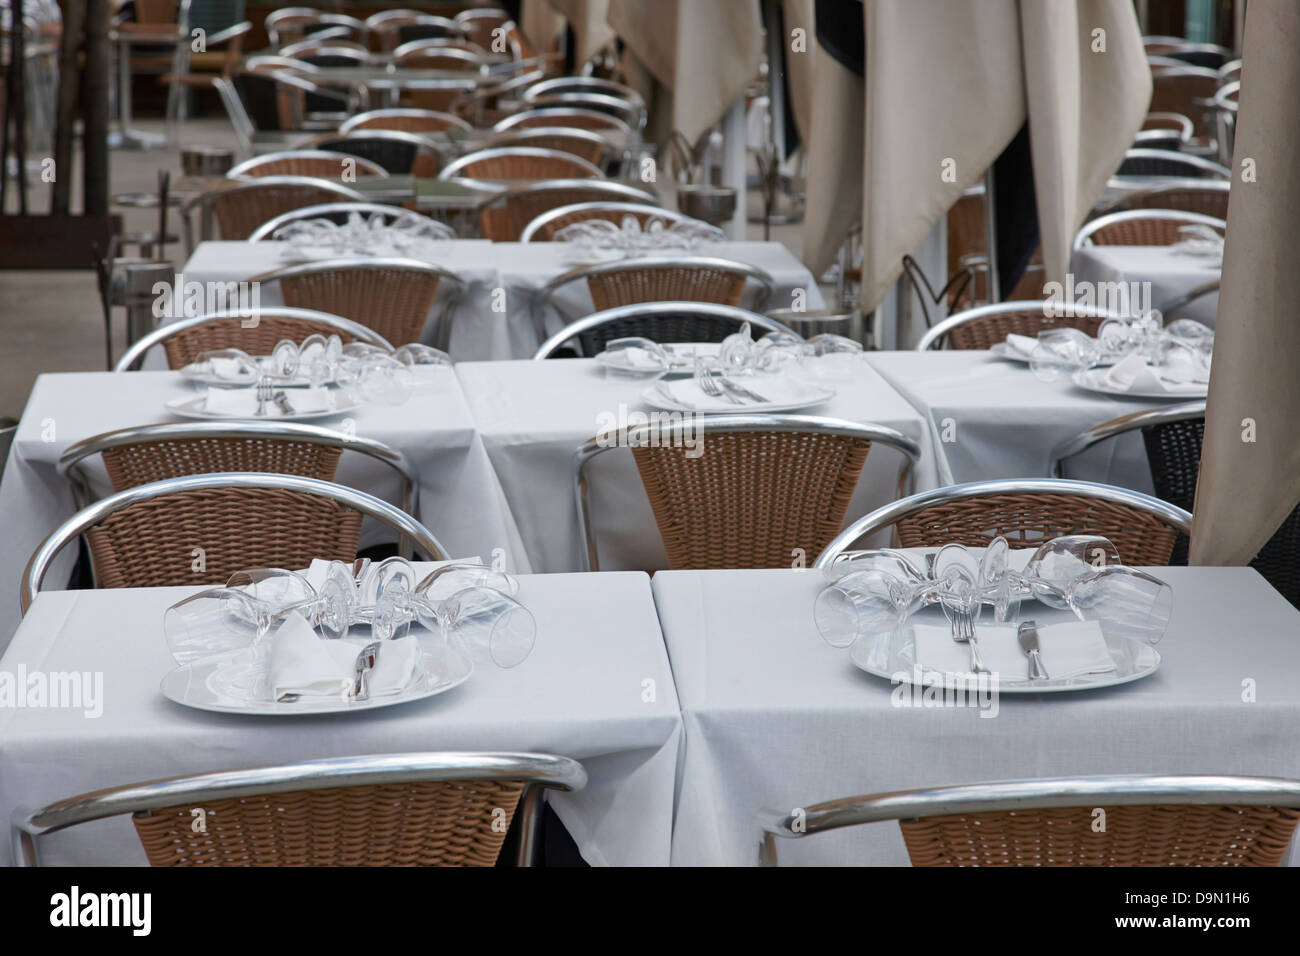 place settings on a table in an empty restaurant barcelona catalonia spain - Stock Image